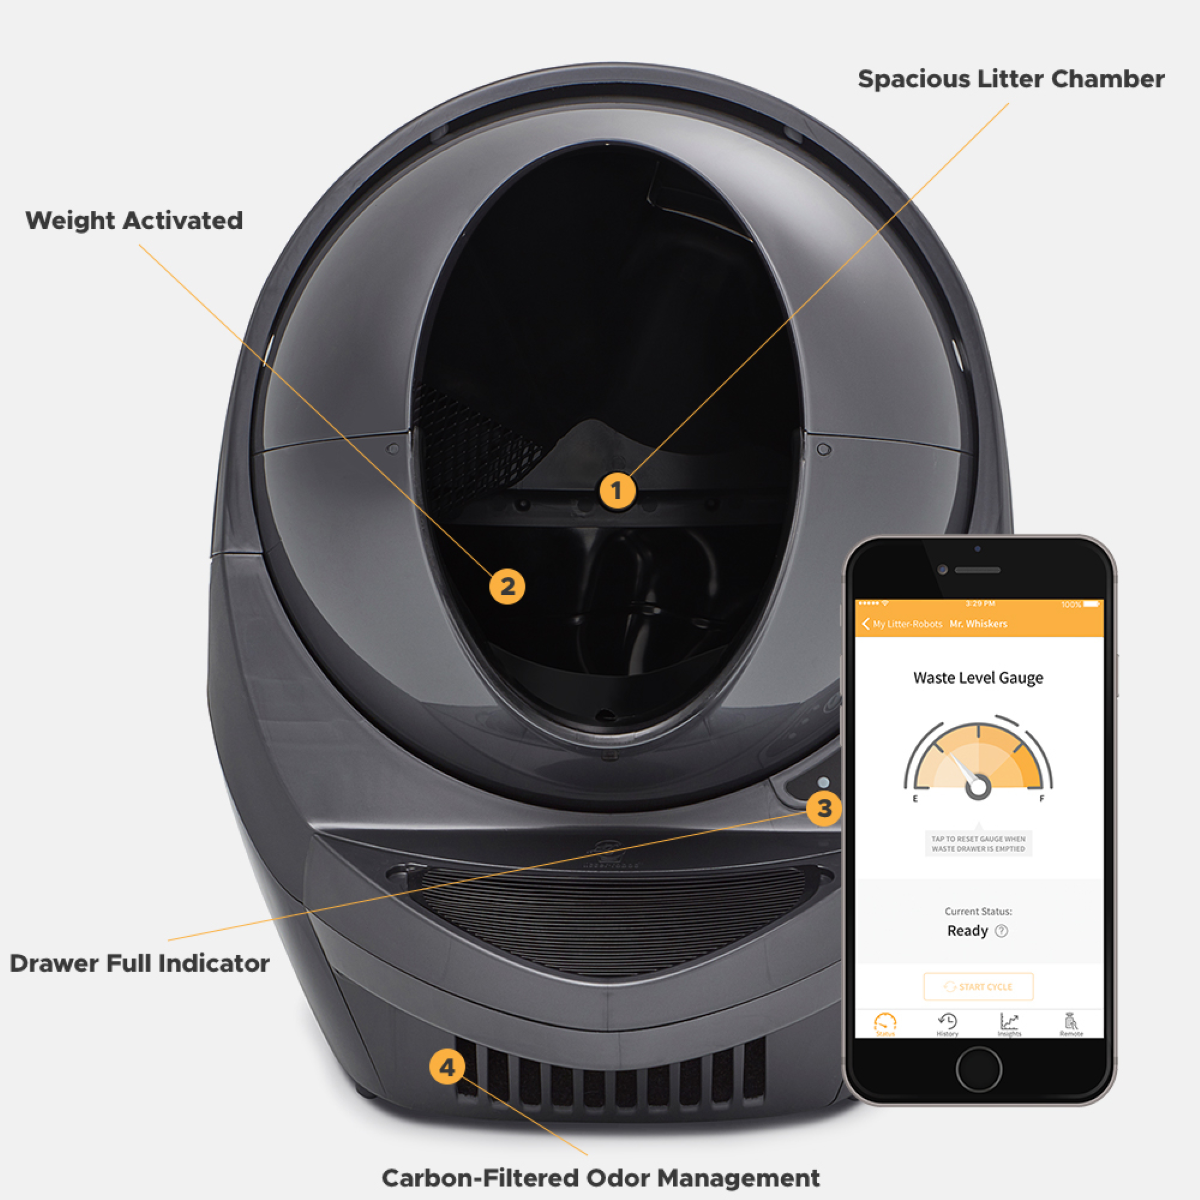 Litter-Robot 3 Connect - Smart Design